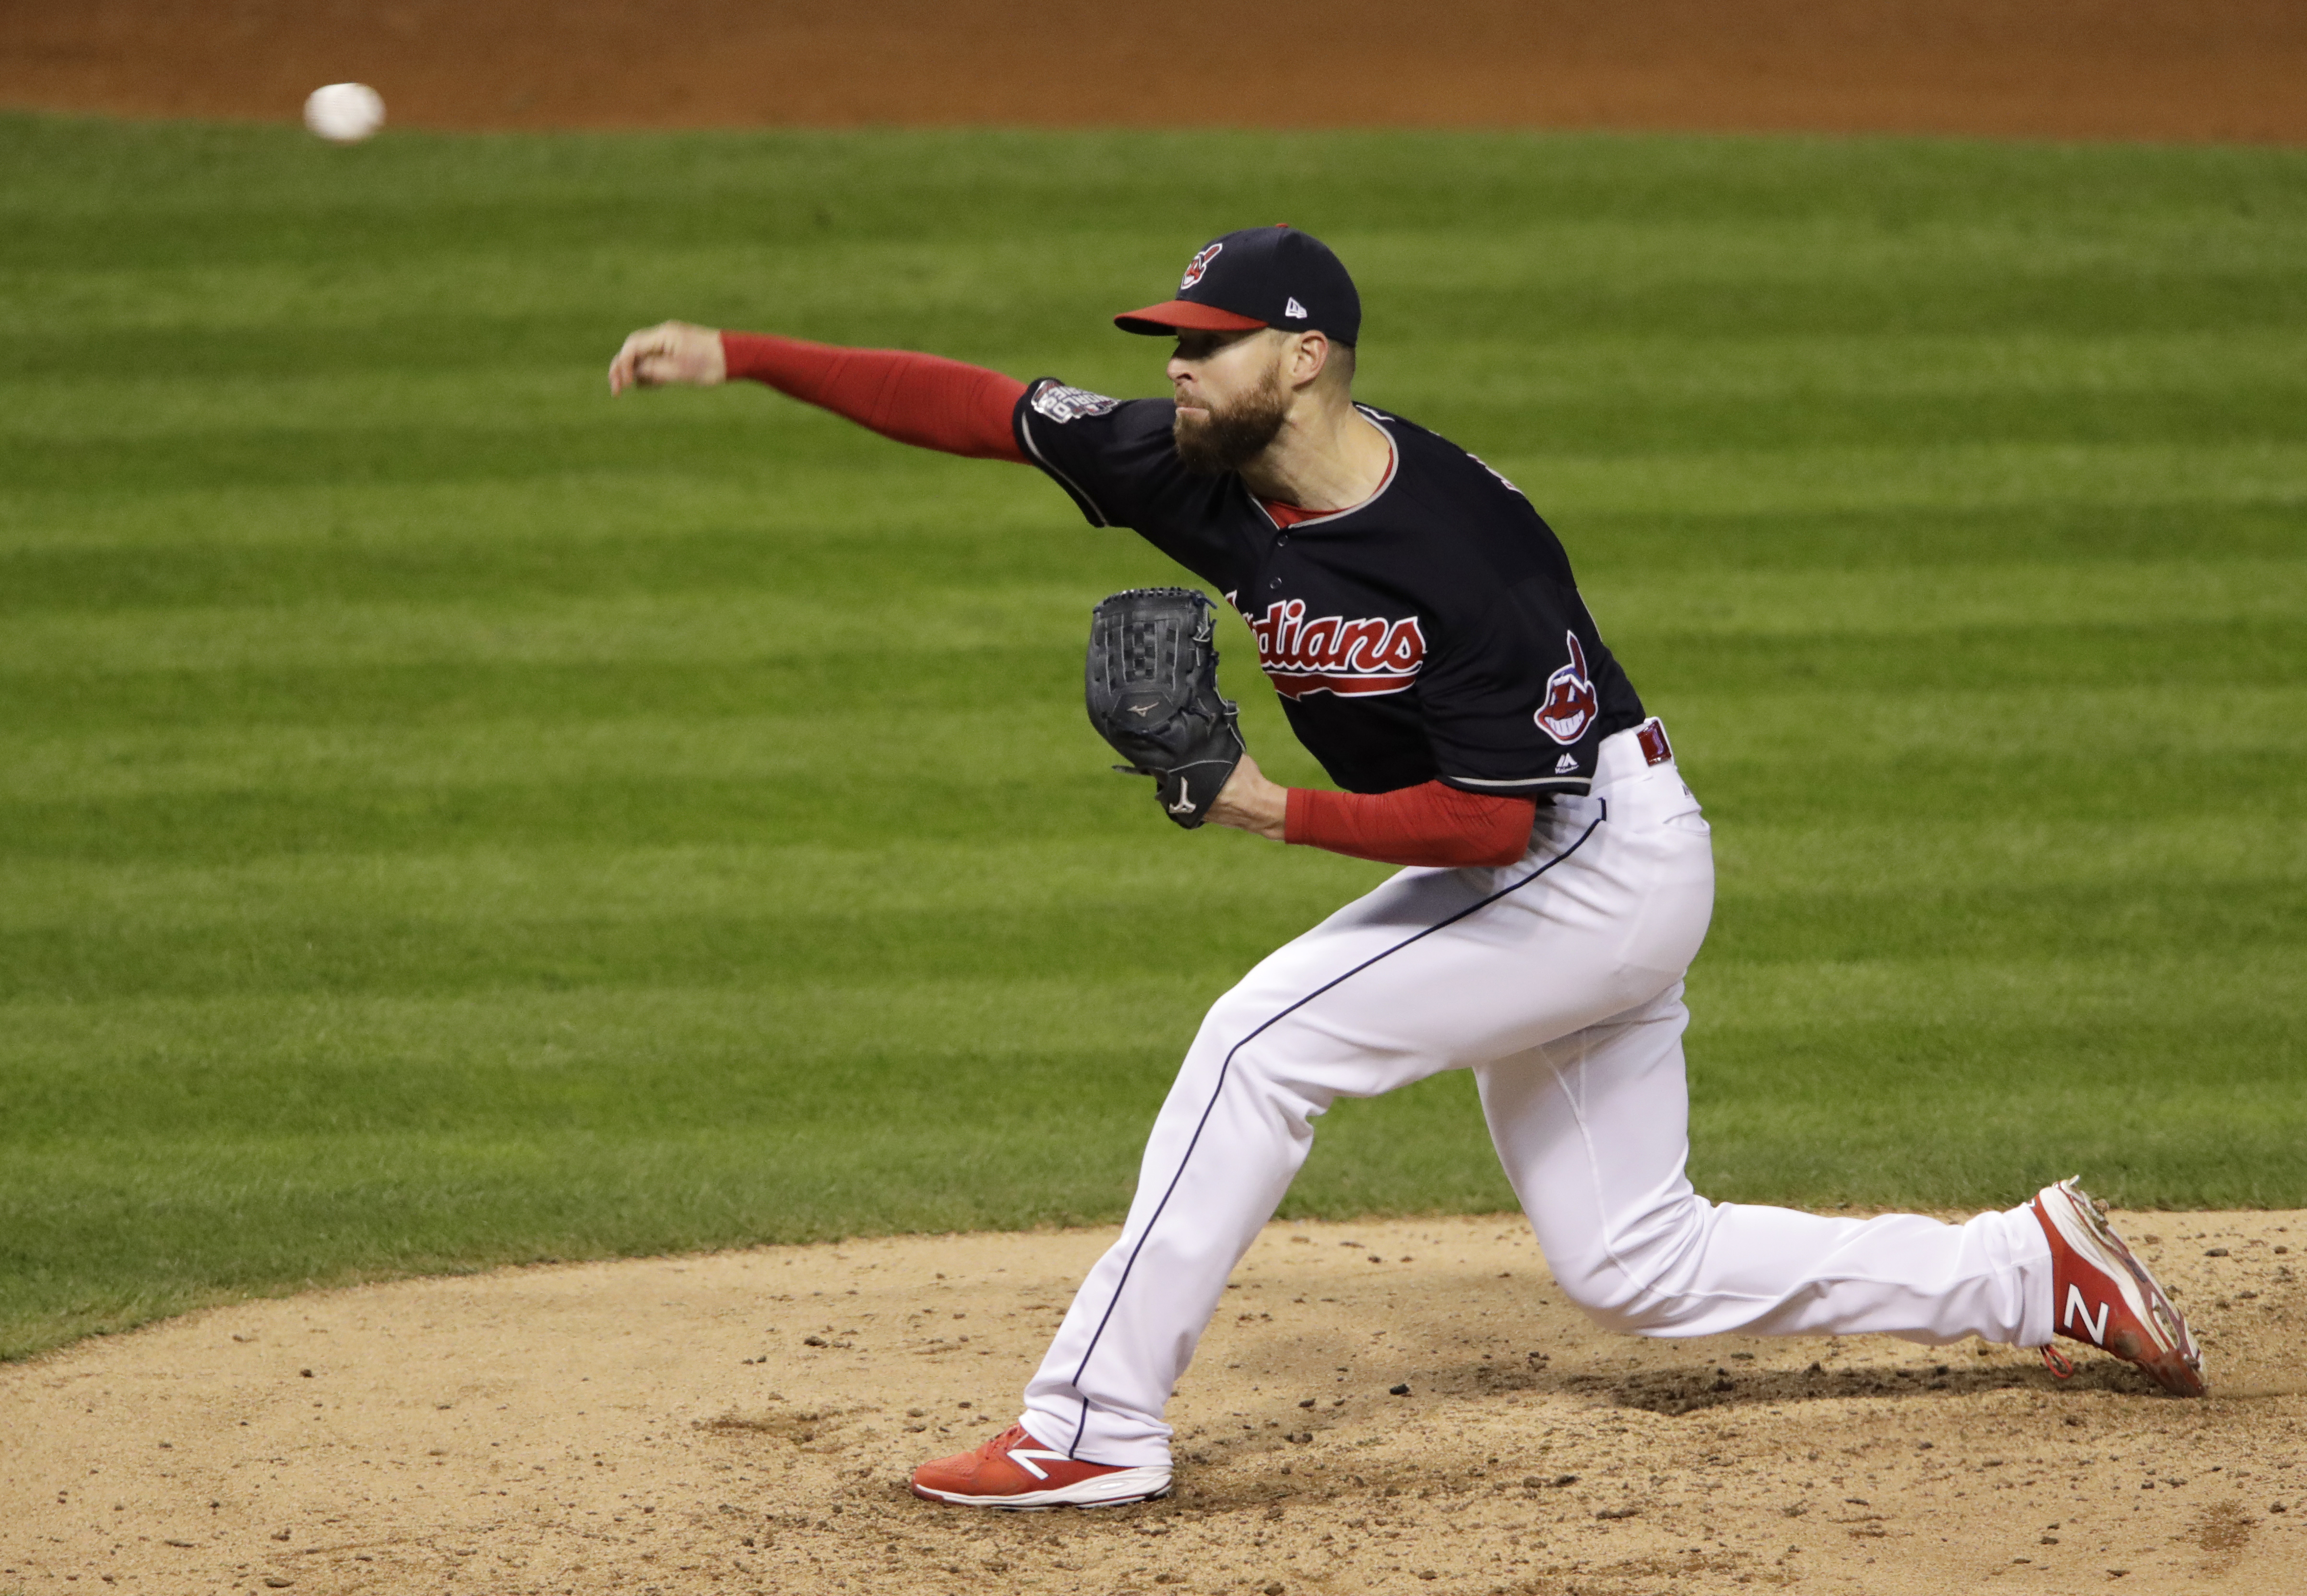 Cleveland Indians starting pitcher Corey Kluber throws during the fifth inning of Game 1 of the Major League Baseball World Series against the Chicago Cubs Tuesday, Oct. 25, 2016, in Cleveland. (AP Photo/Gene J. Puskar)